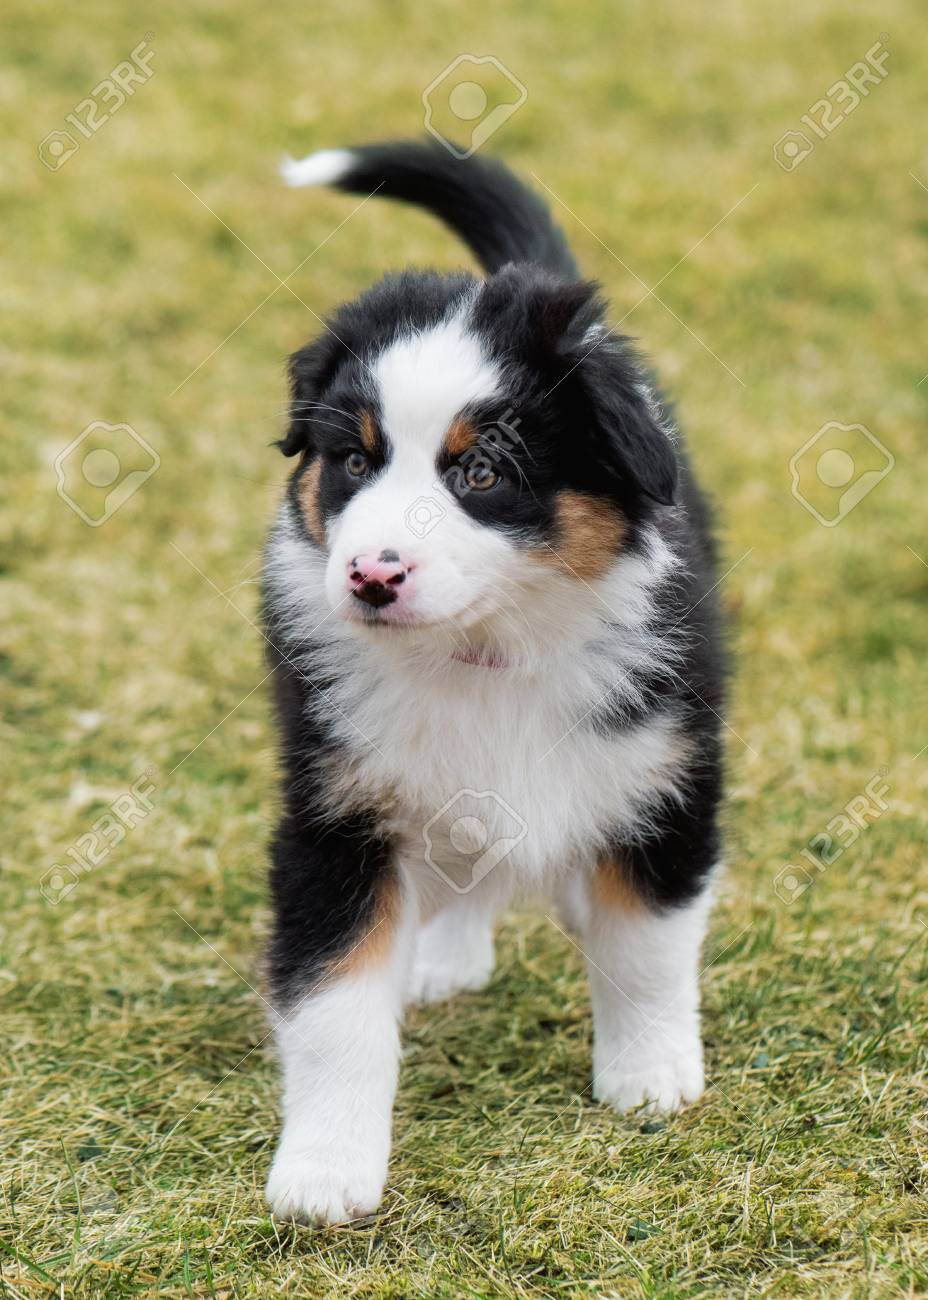 Australian Shepherd Purebred Dog On Meadow In Autumn Or Spring Stock Photo Picture And Royalty Free Image Image 97434314